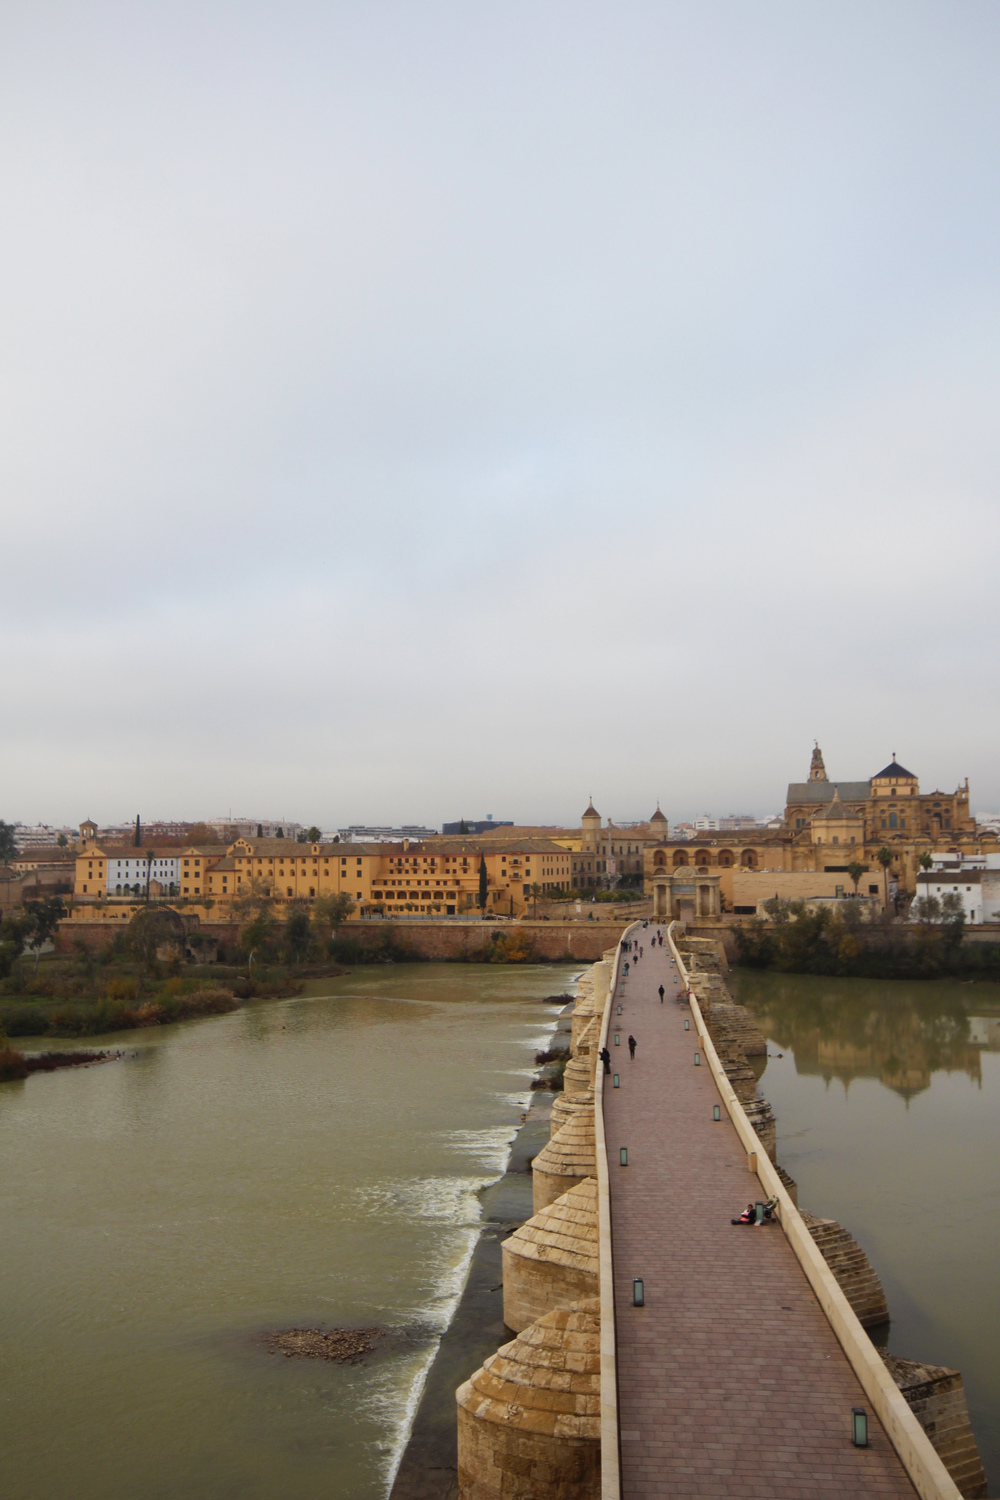 The Punto Bajada del Puente with Mosque in the background